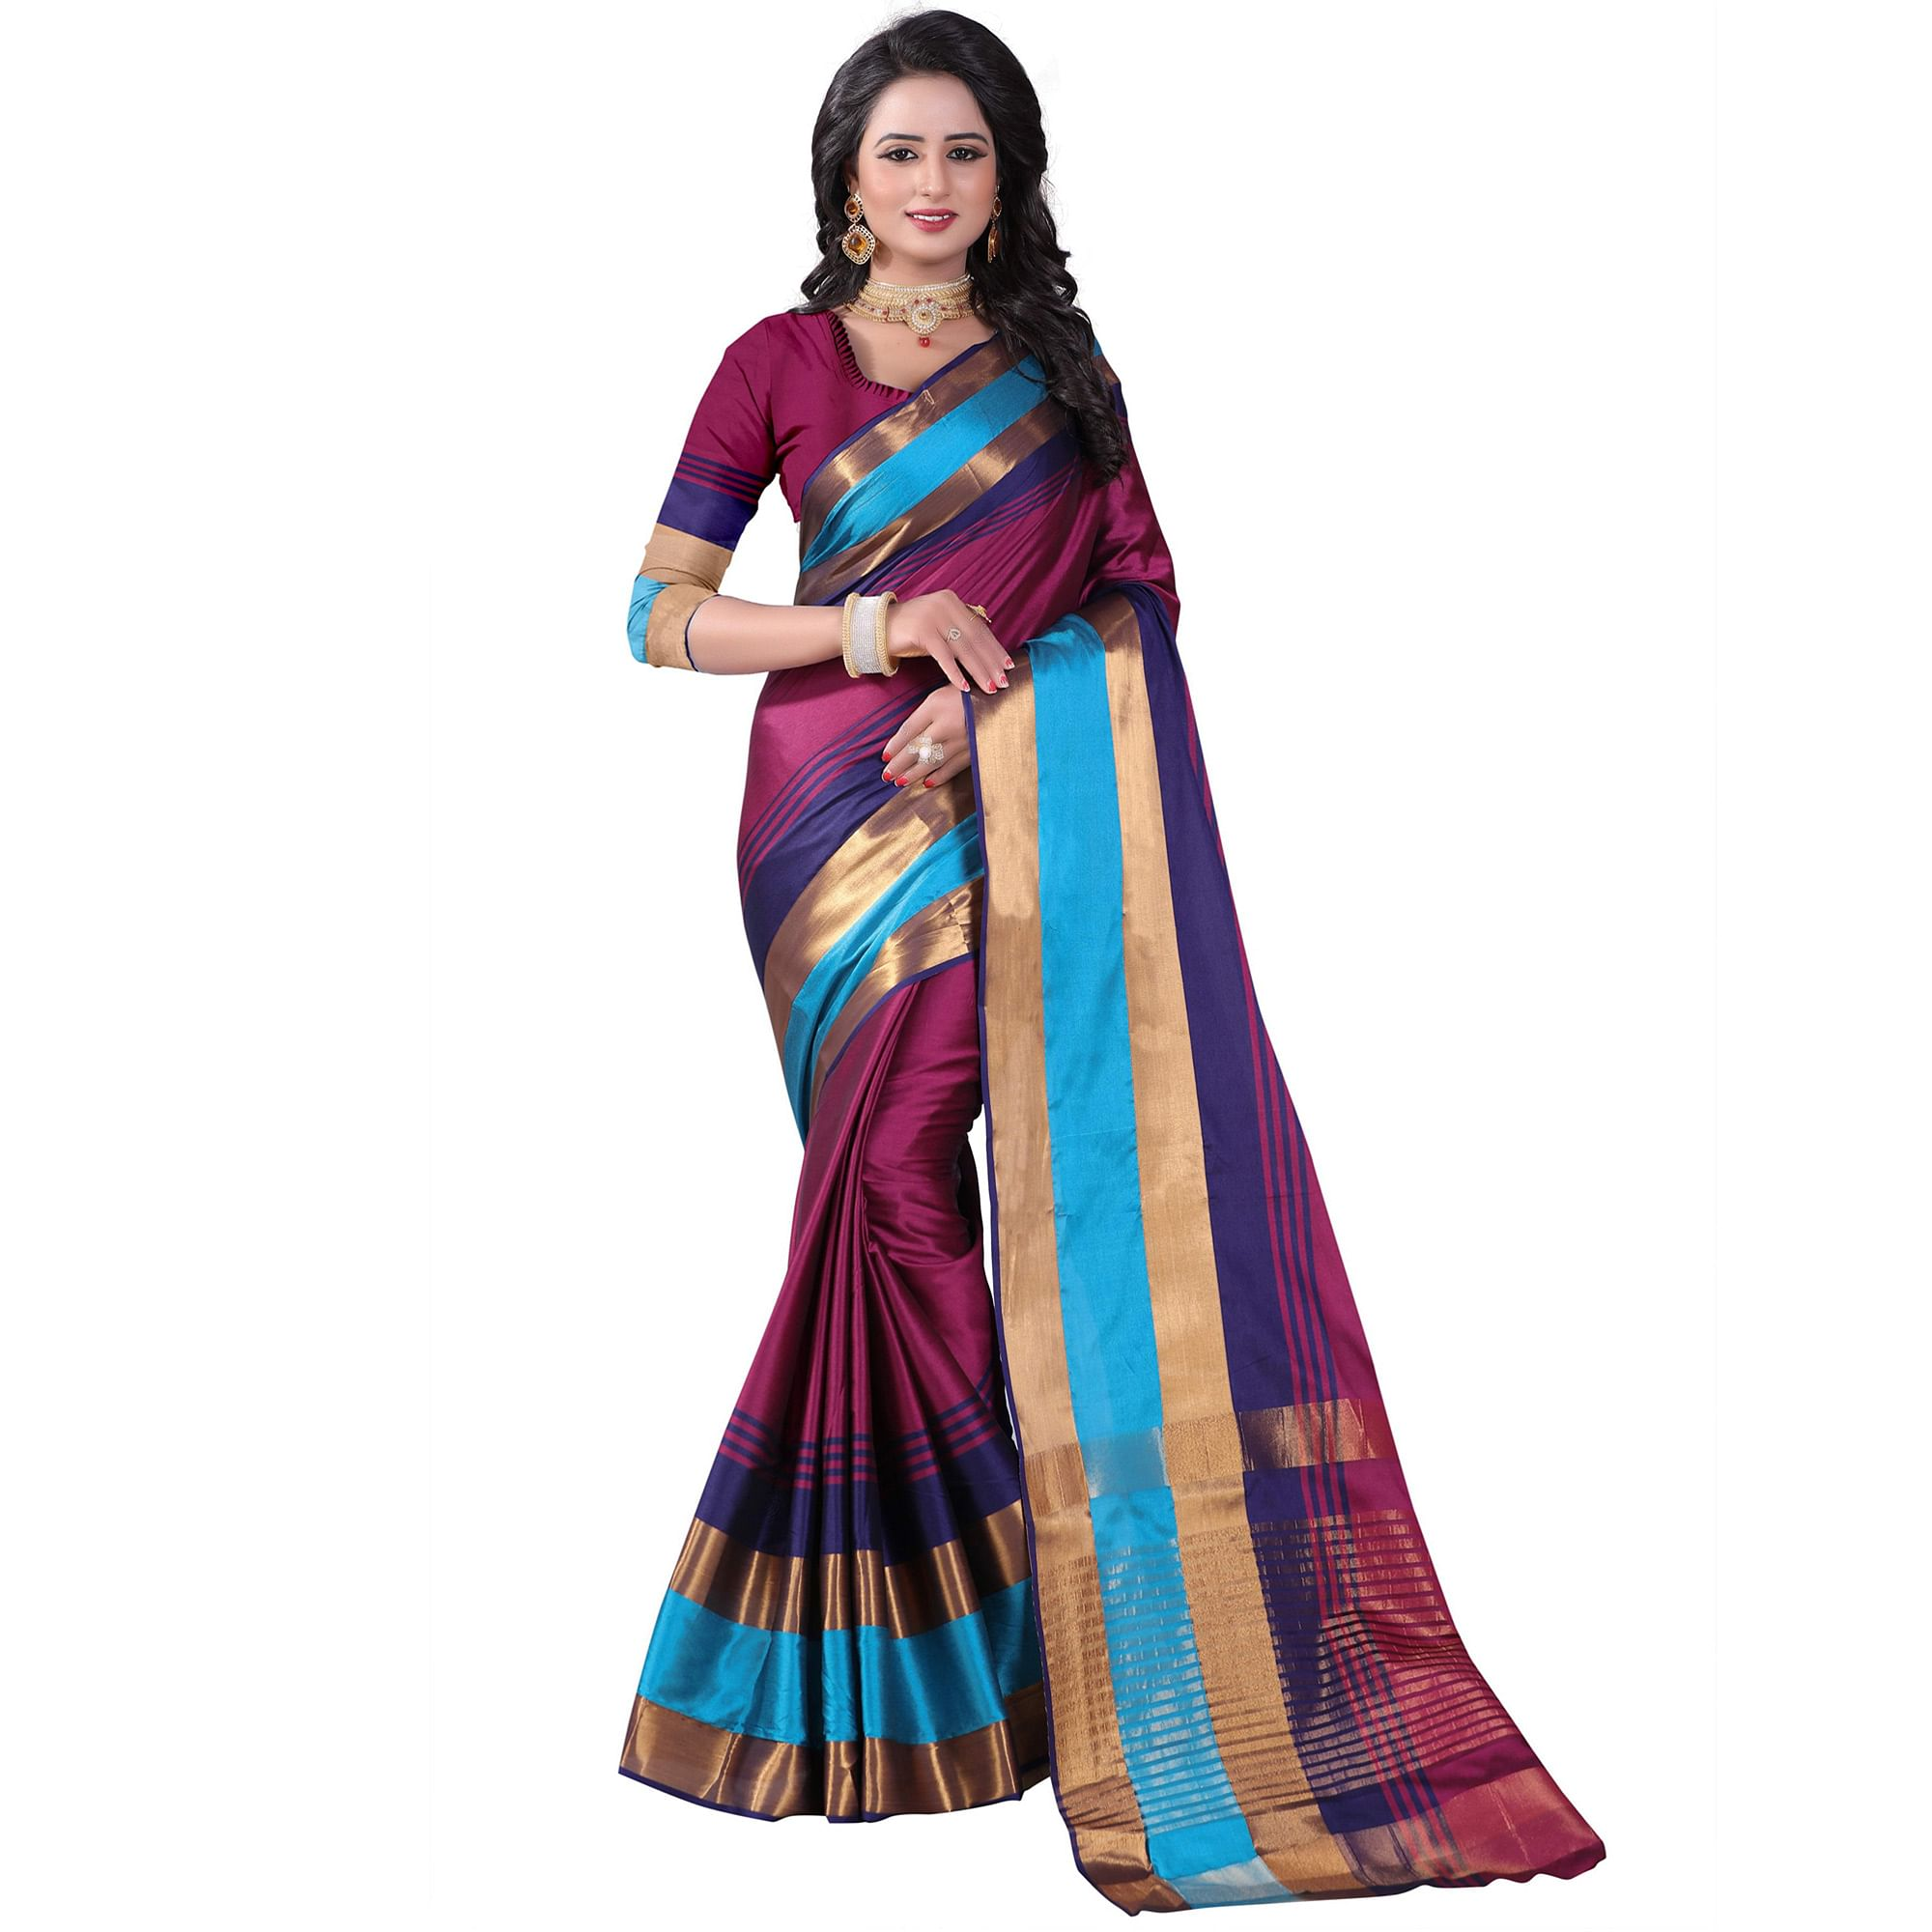 Mesmeric Magenta Colored Festive Wear Cotton Silk Saree